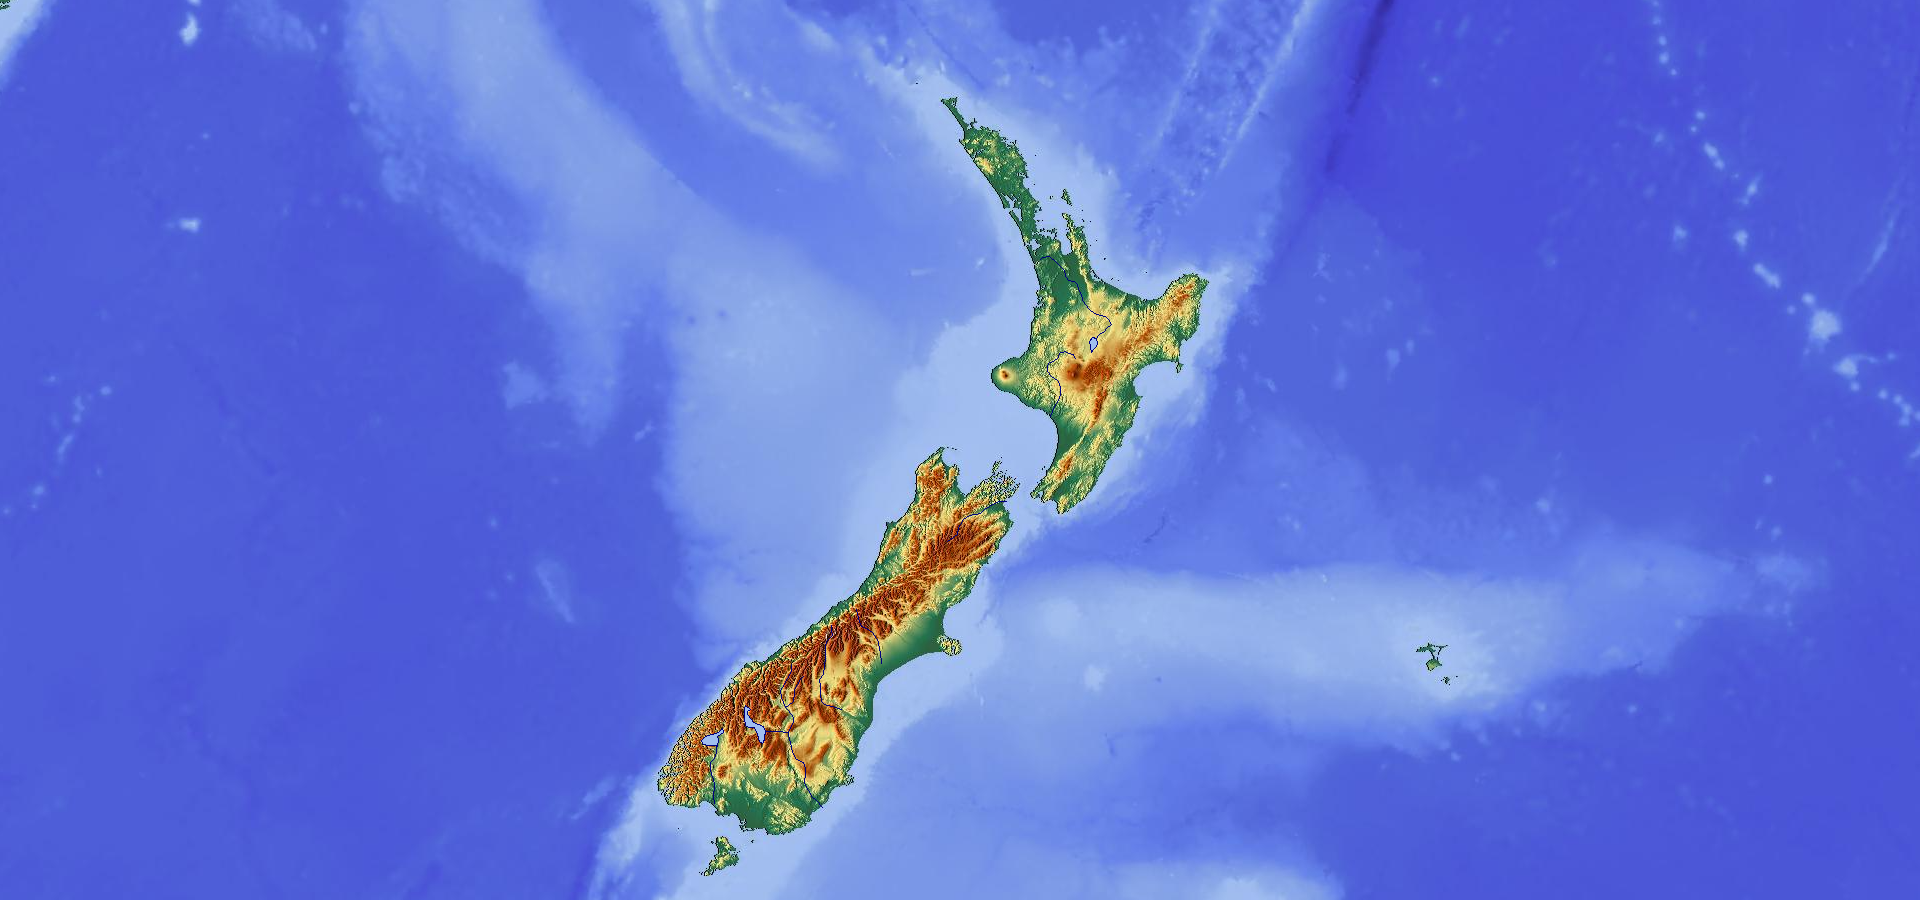 Topographic Map Of New Zealand.Topographic Map Of New Zealand Maps Of Australia Australasia